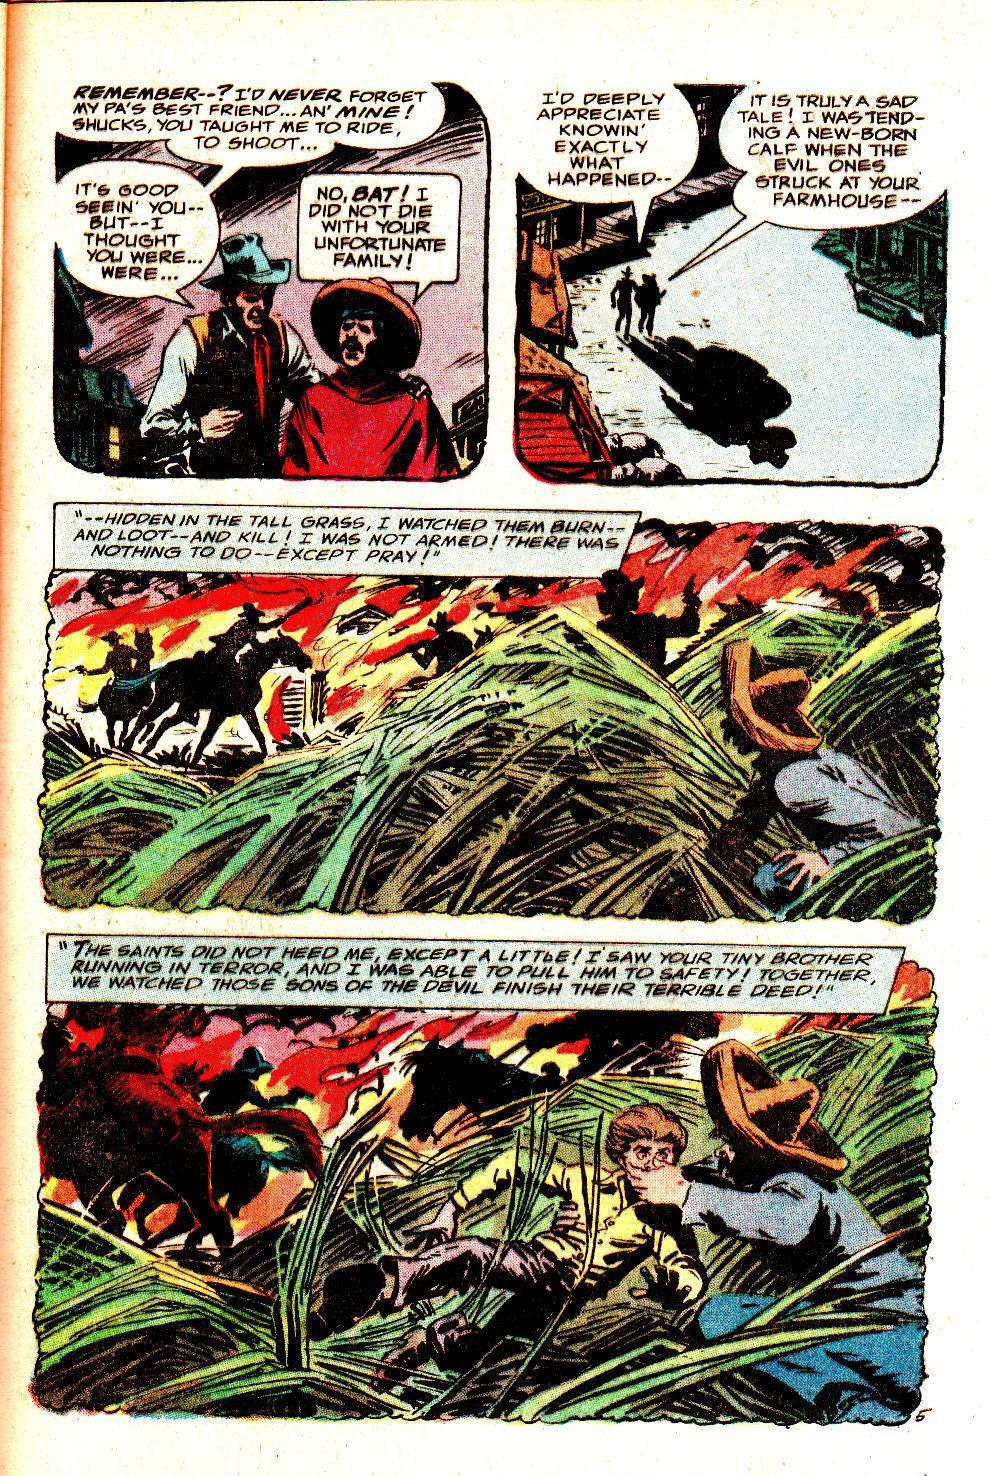 Read online All-Star Western (1970) comic -  Issue #11 - 41